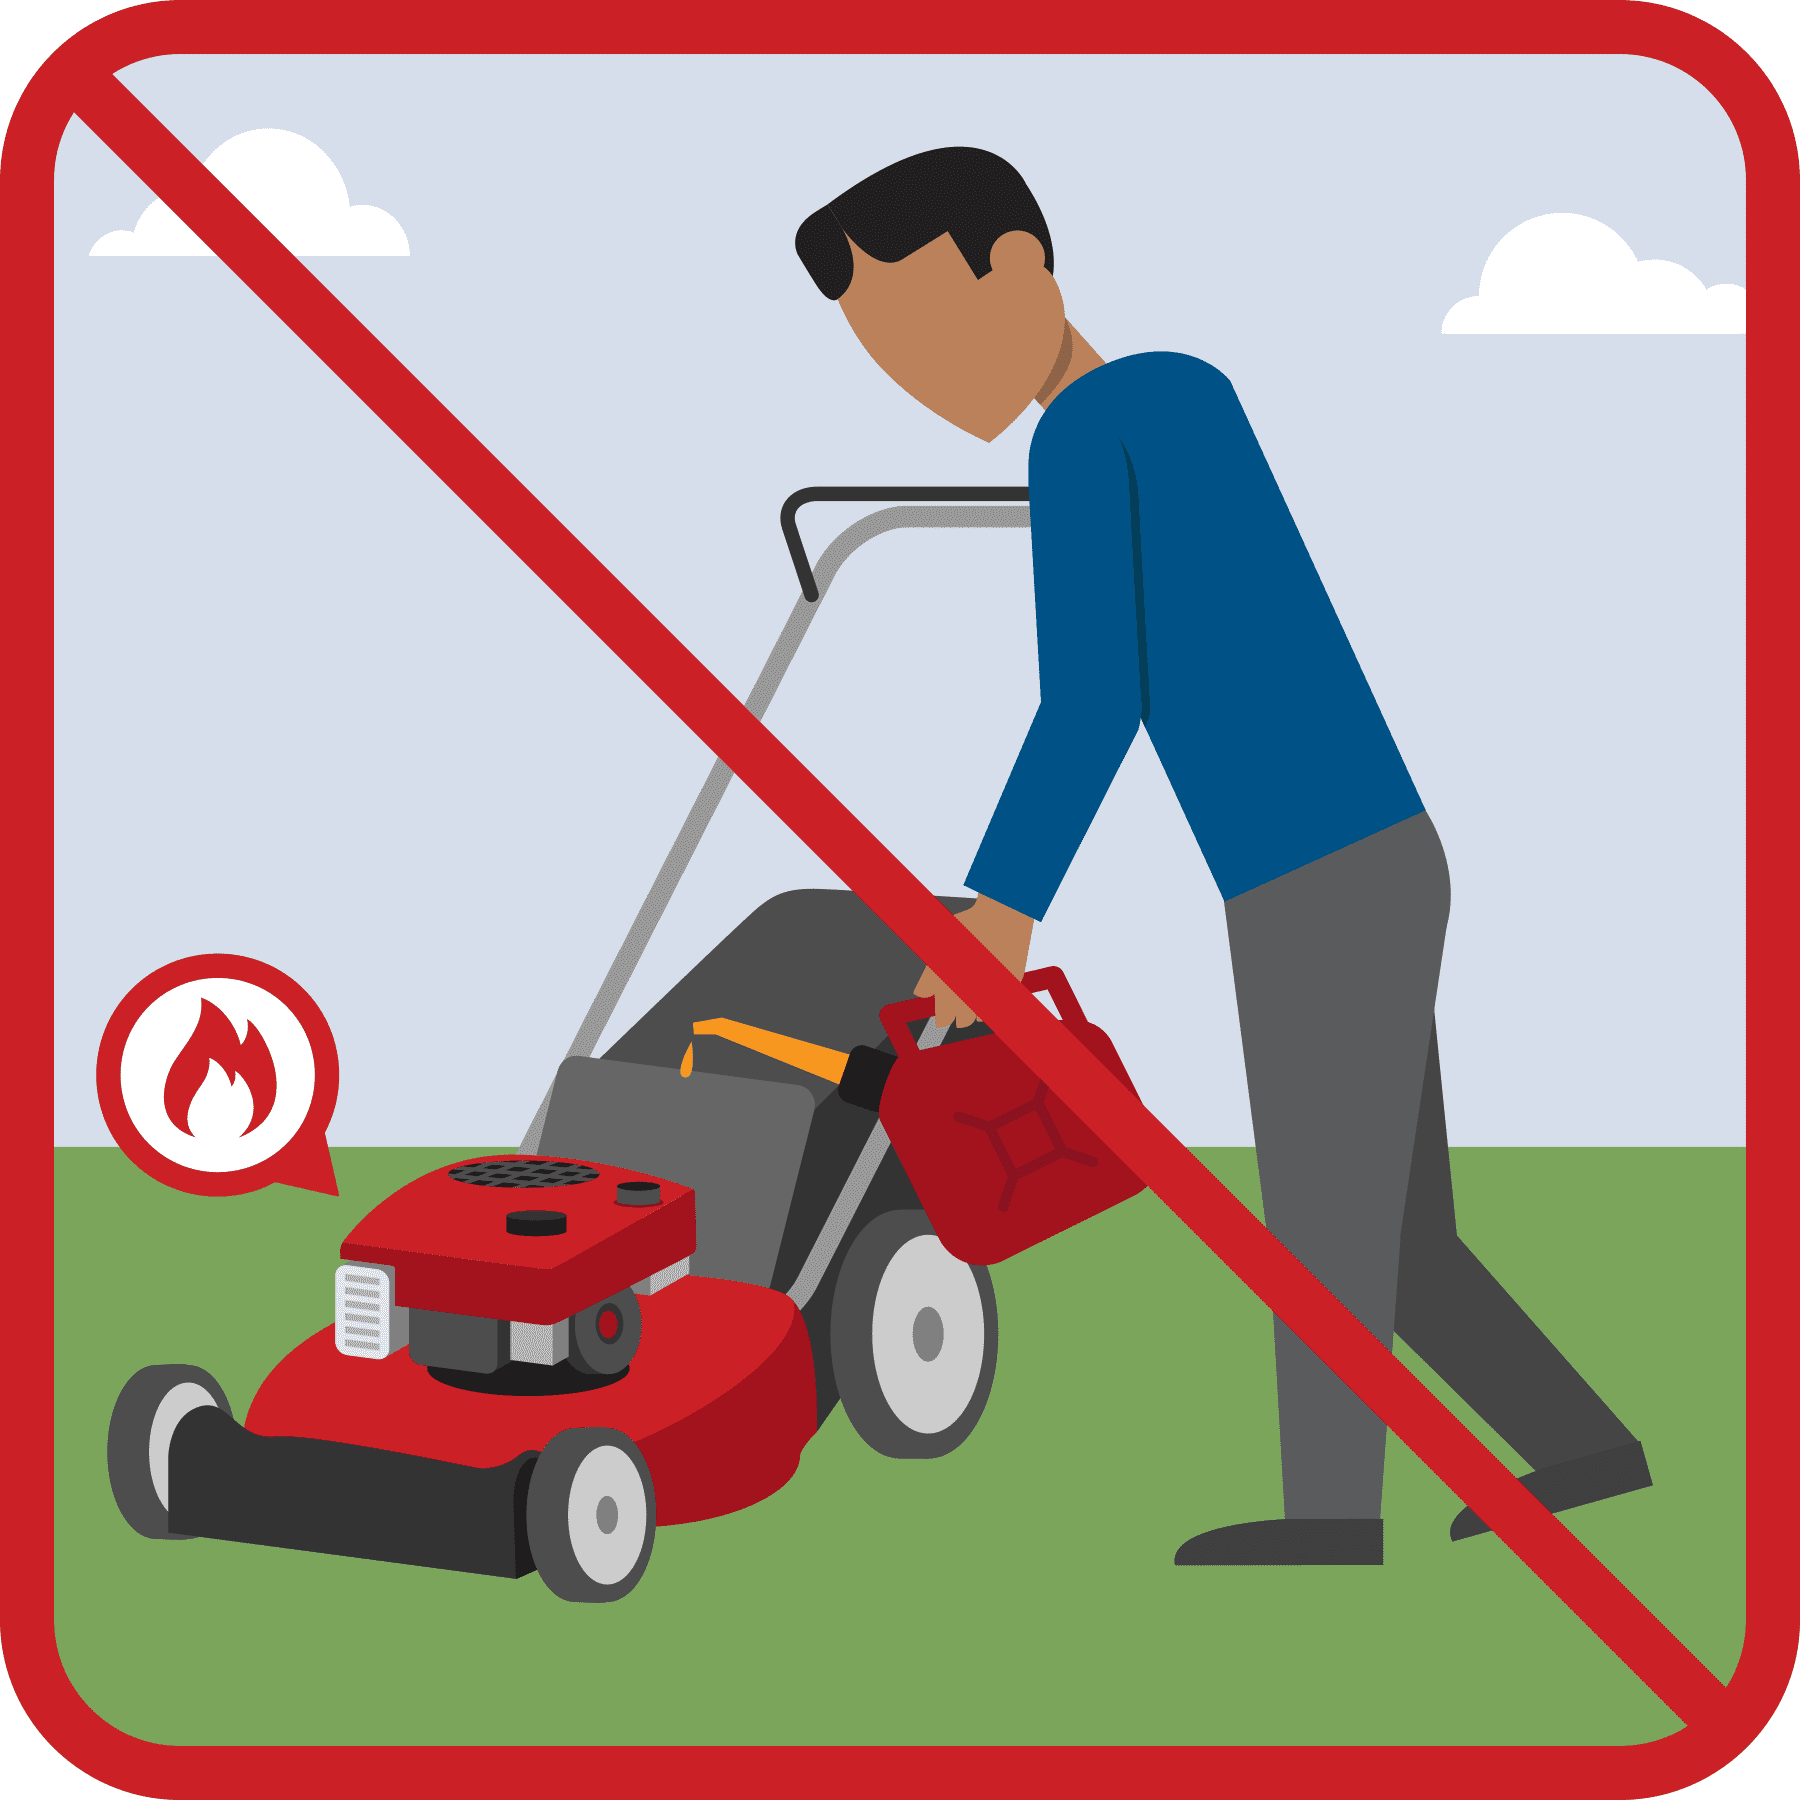 A man is fueling a hot lawnmower. A red line is drawn across the illustration.